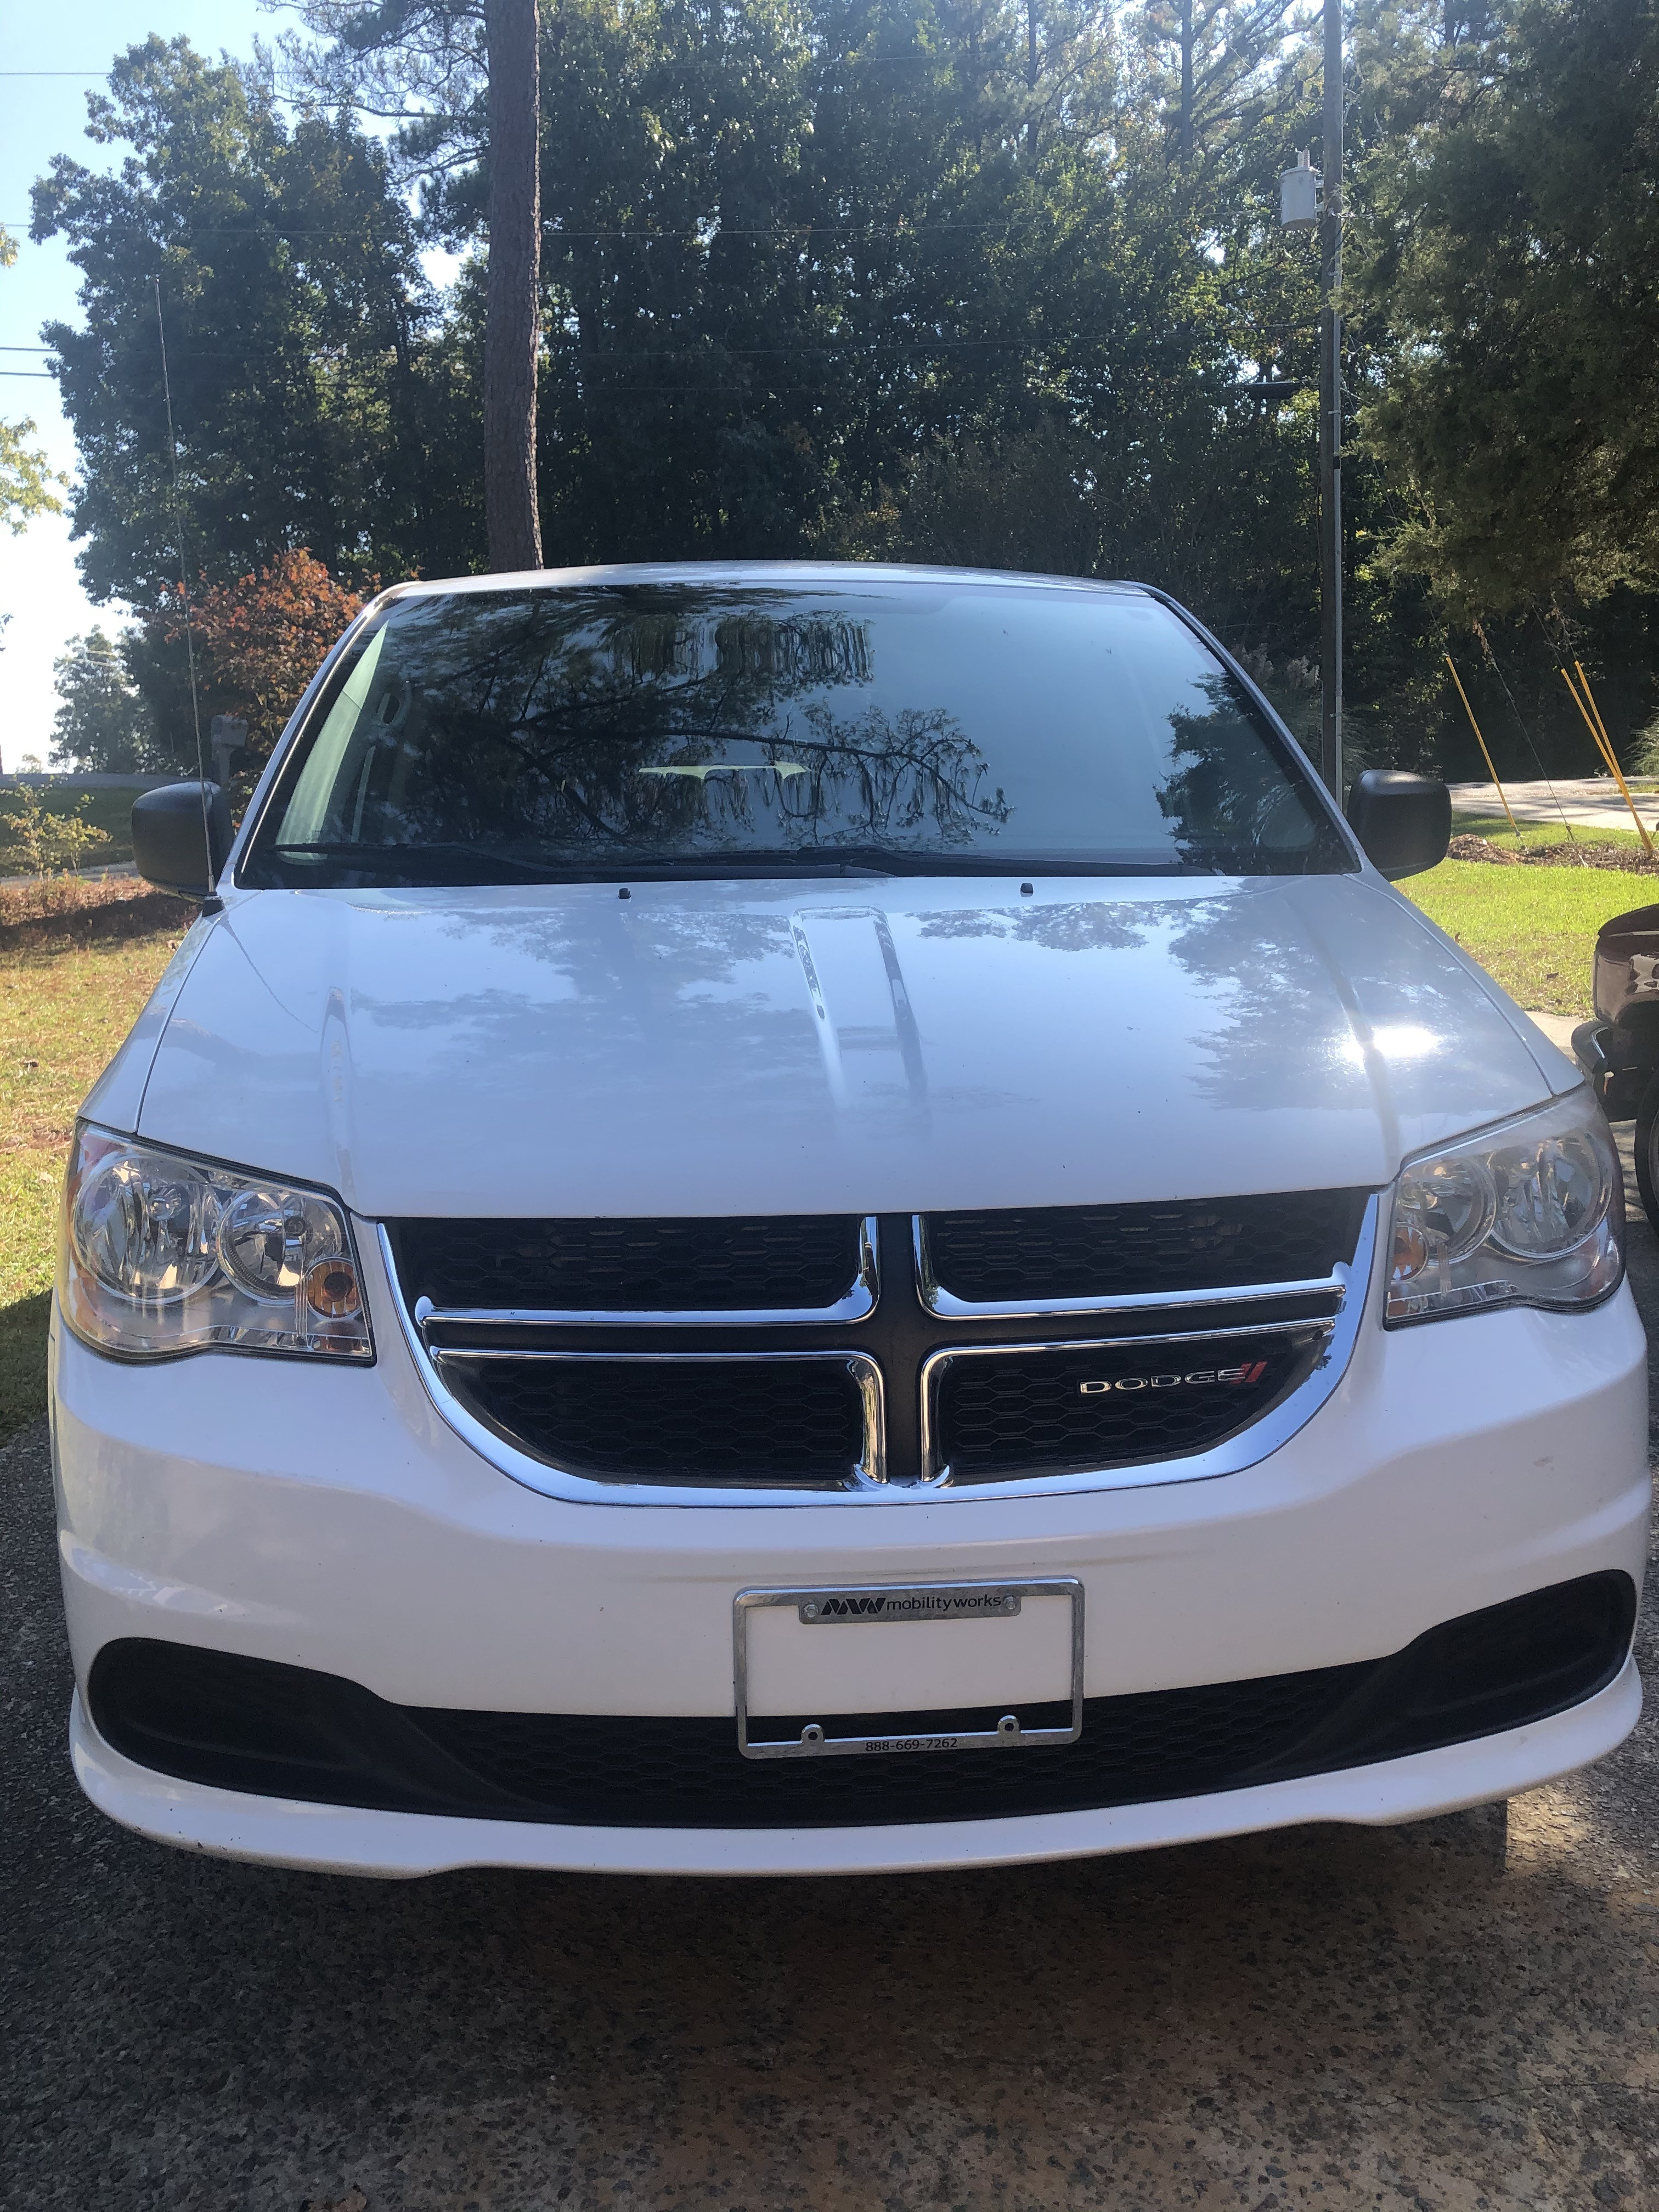 Photo 2 of 2015 Dodge Grand Caravan with Conversion